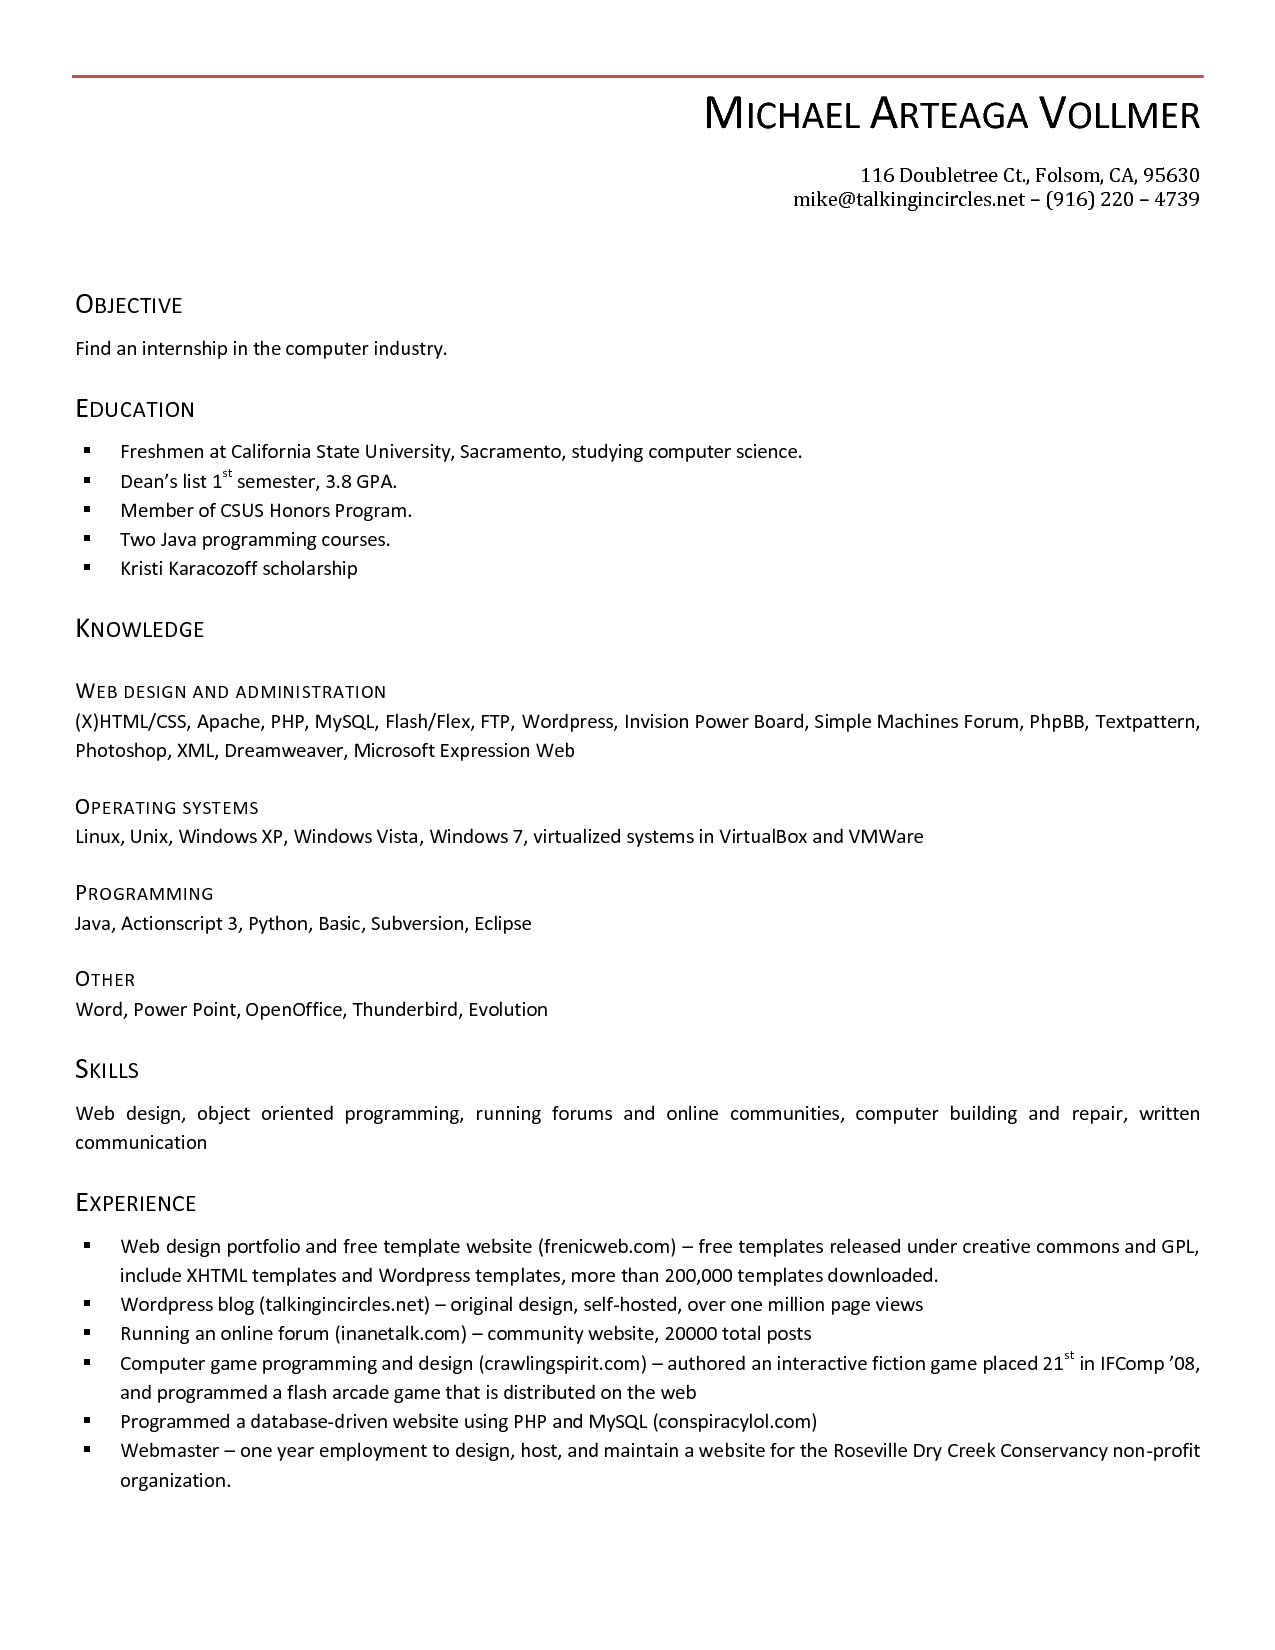 Resume templates for openoffice hdresume templates cover letter resume templates for openoffice hdresume templates cover letter examples madrichimfo Images